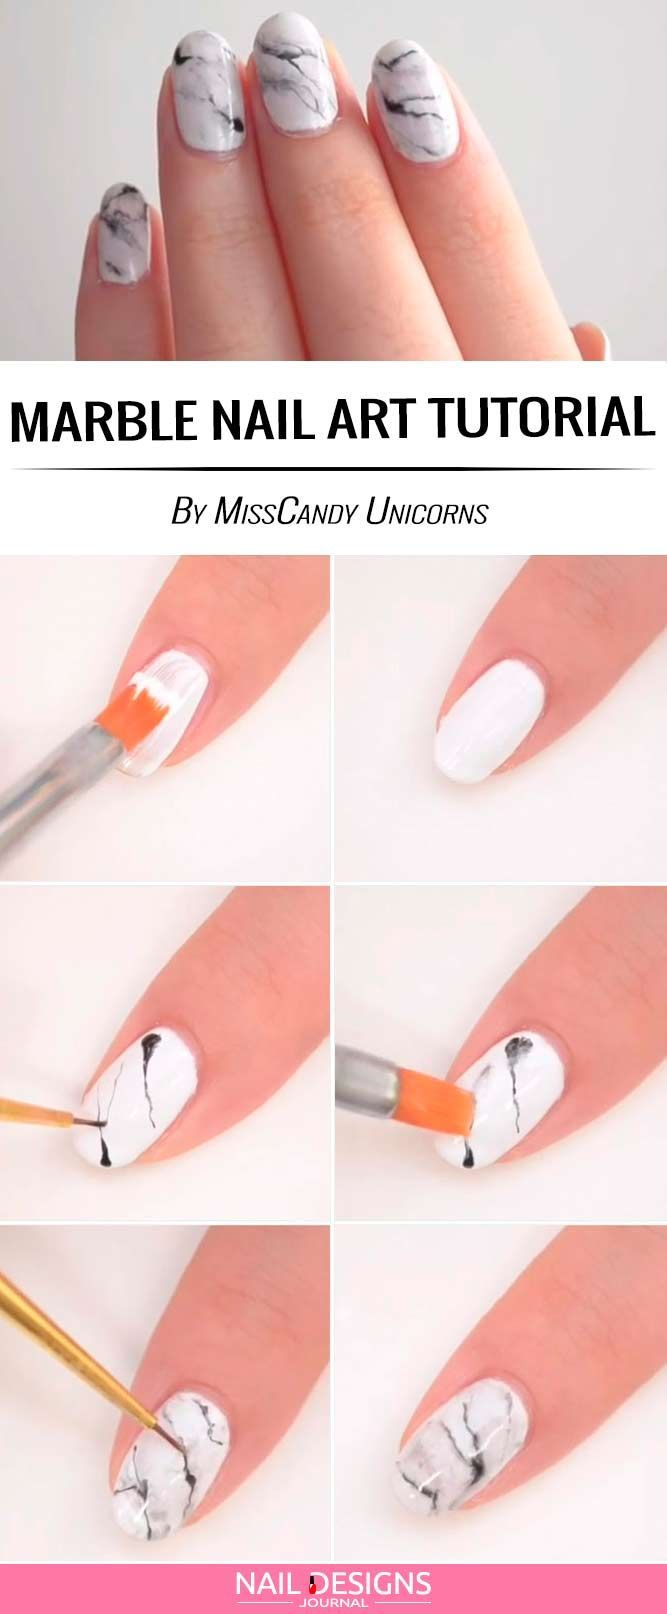 Cute And Easy Nail Designs To Do At Home See More Https Naildesignsjournal Com Easy Nail Designs Nails Nail Designs Easy Diy Nail Art Diy Nail Designs